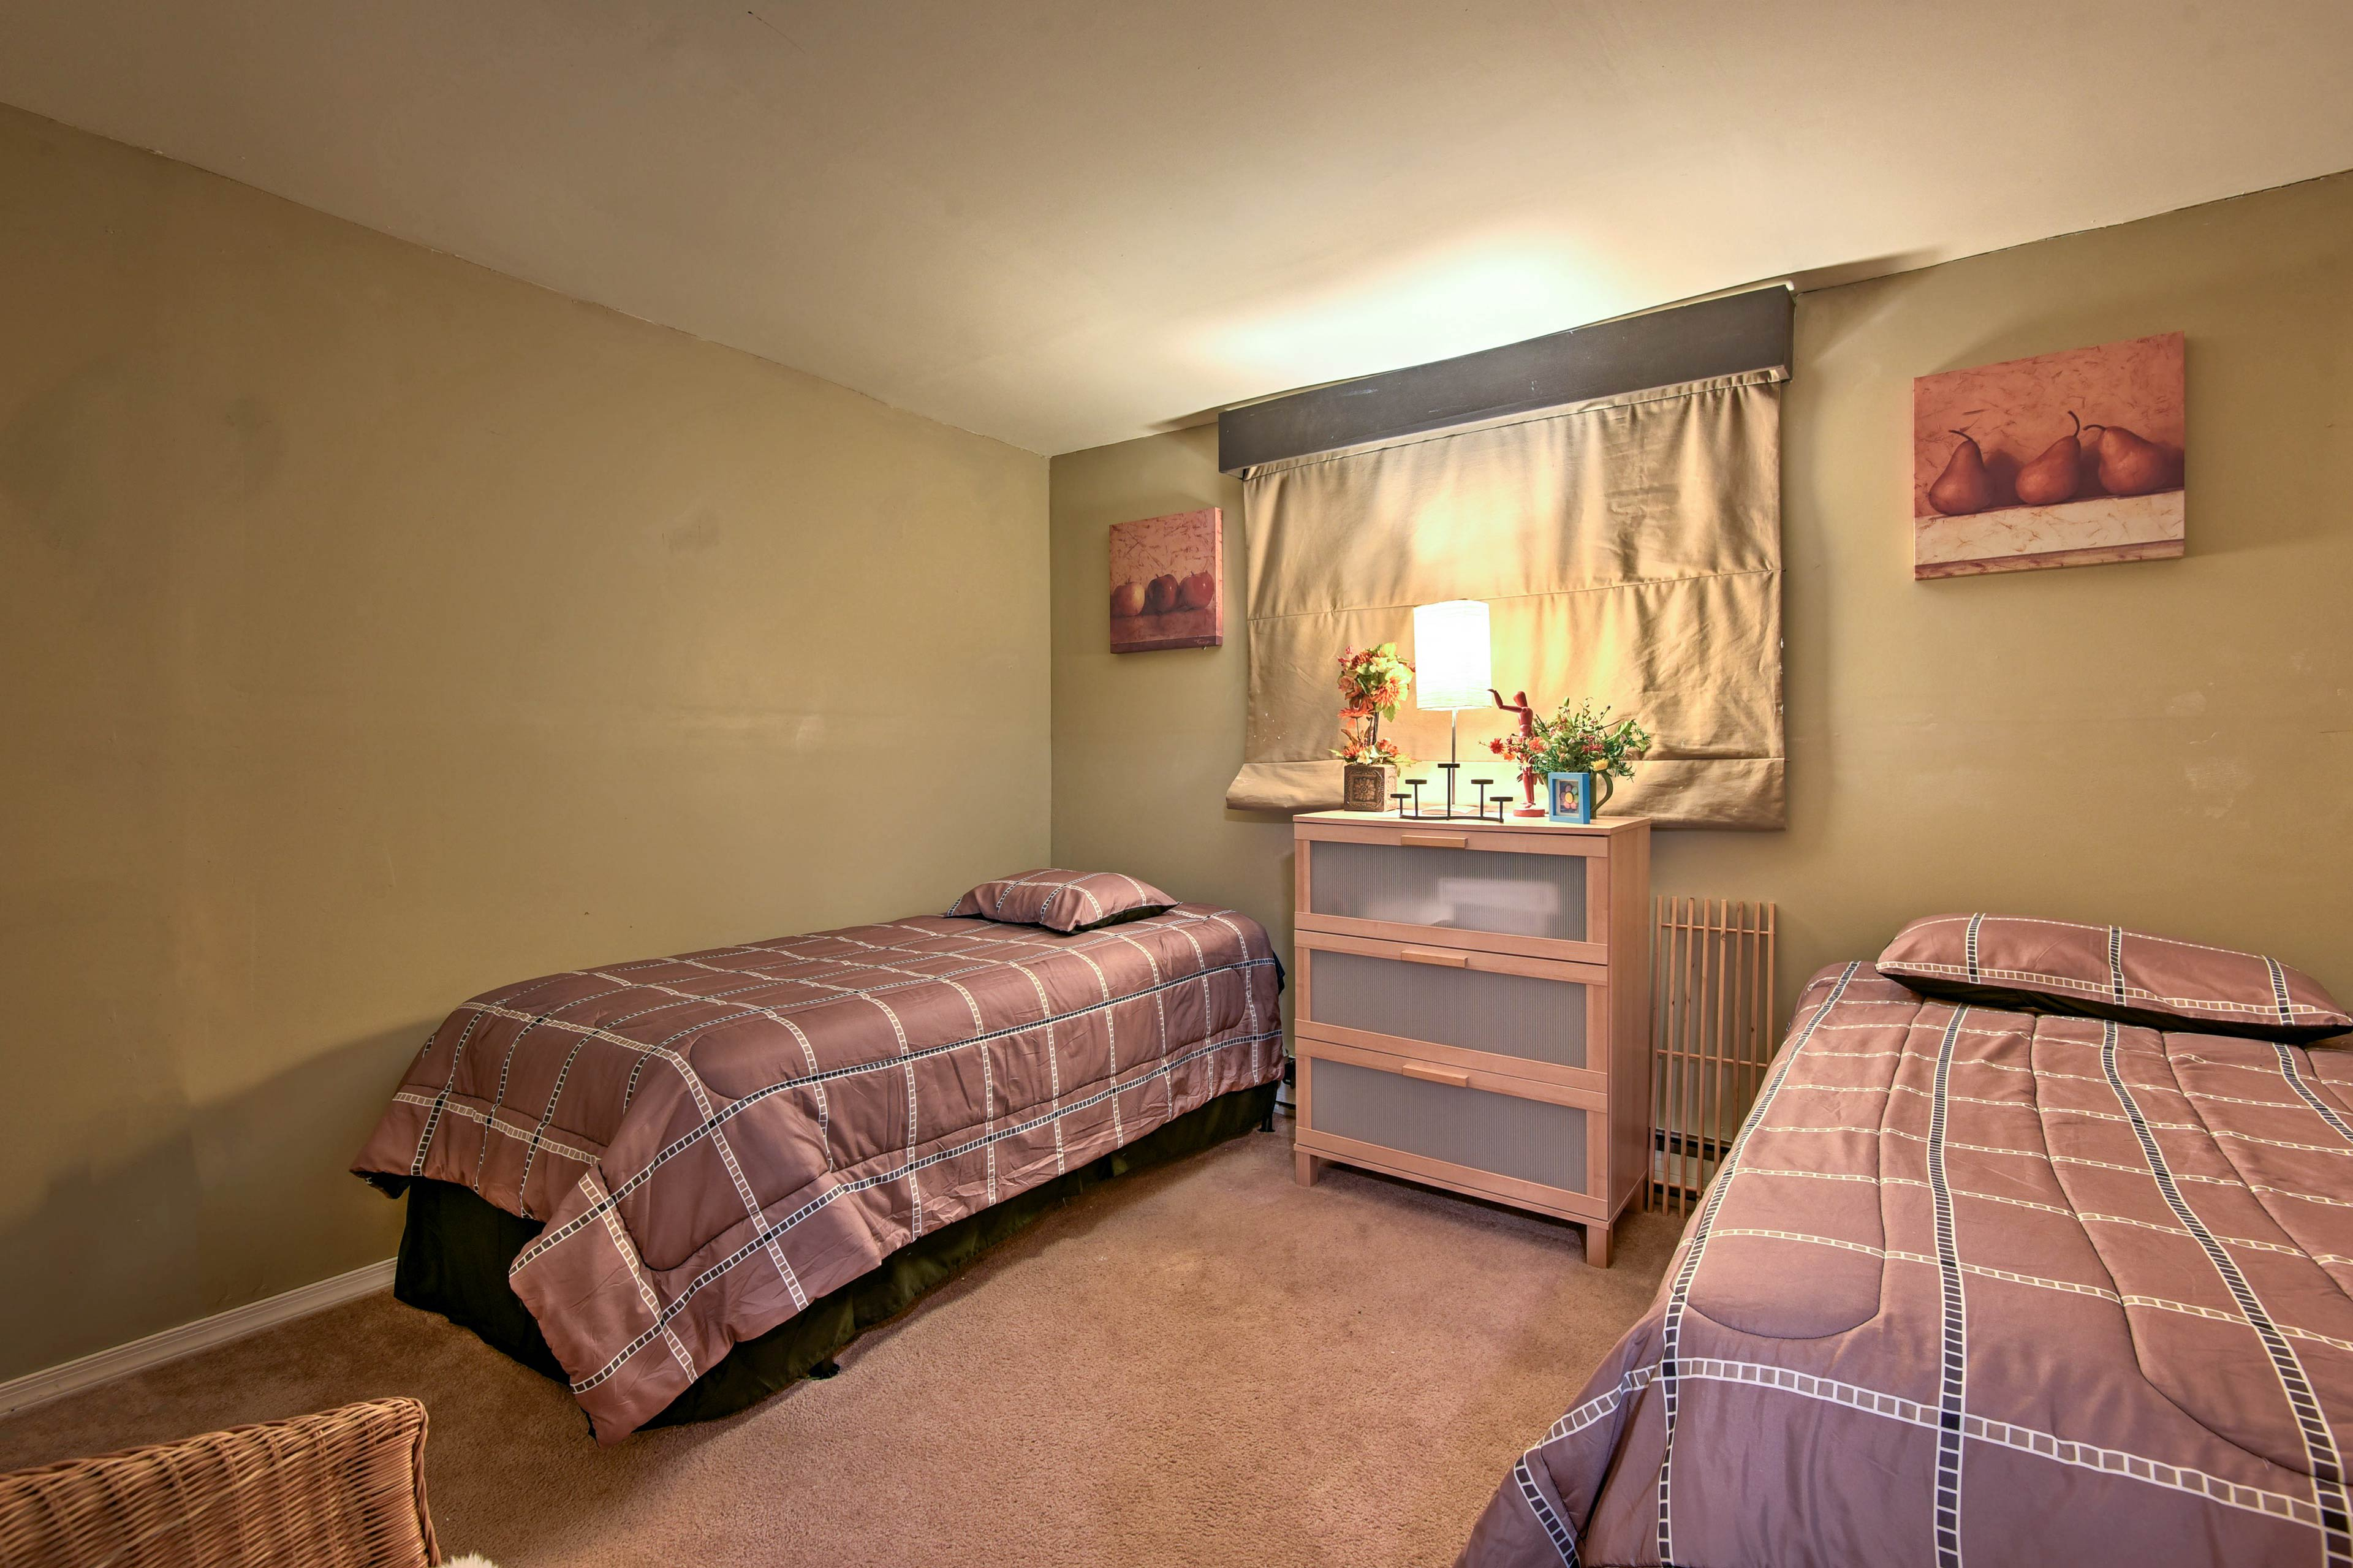 The additional 2 bedrooms feature twin beds.